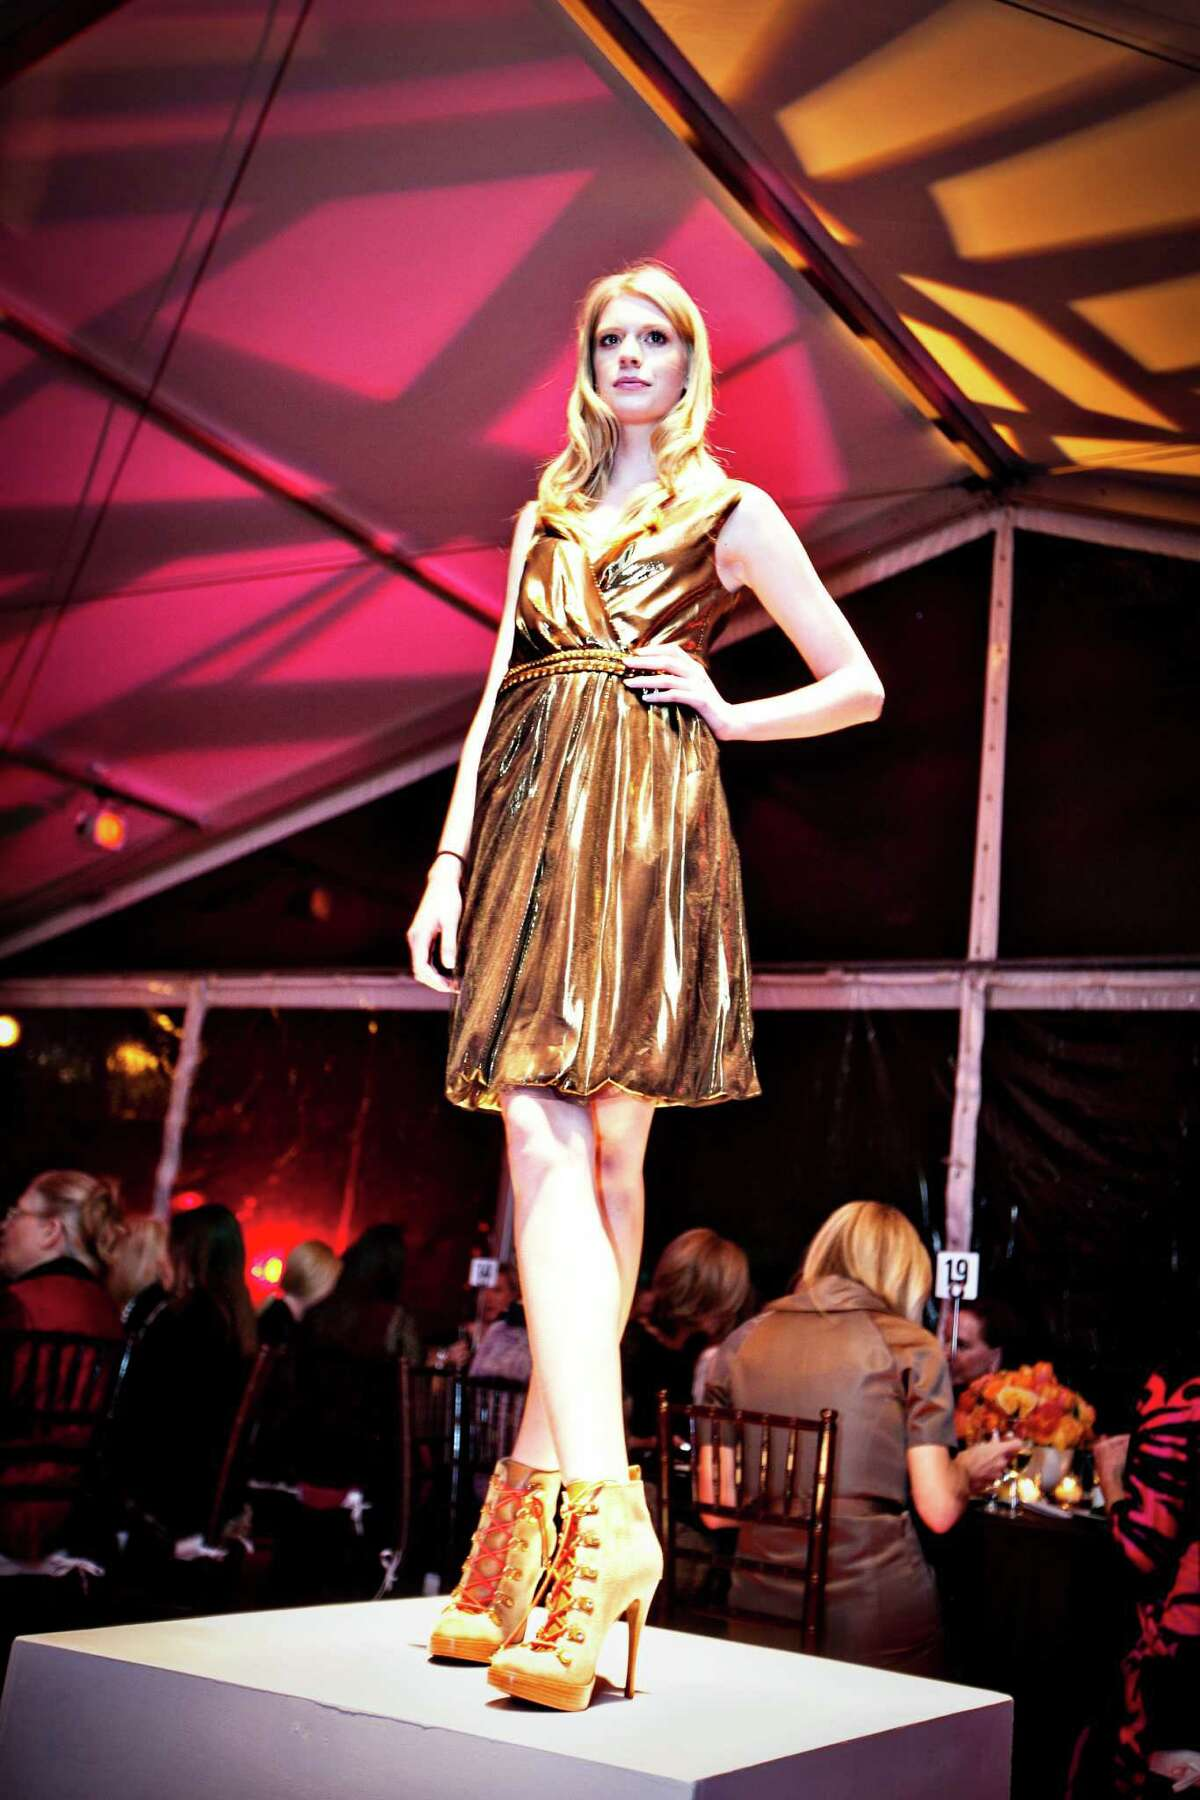 Model Alyssa Pasek showed off Tory Burch fashions during the Another Great Night in November dinner. credit: Amy Vogel